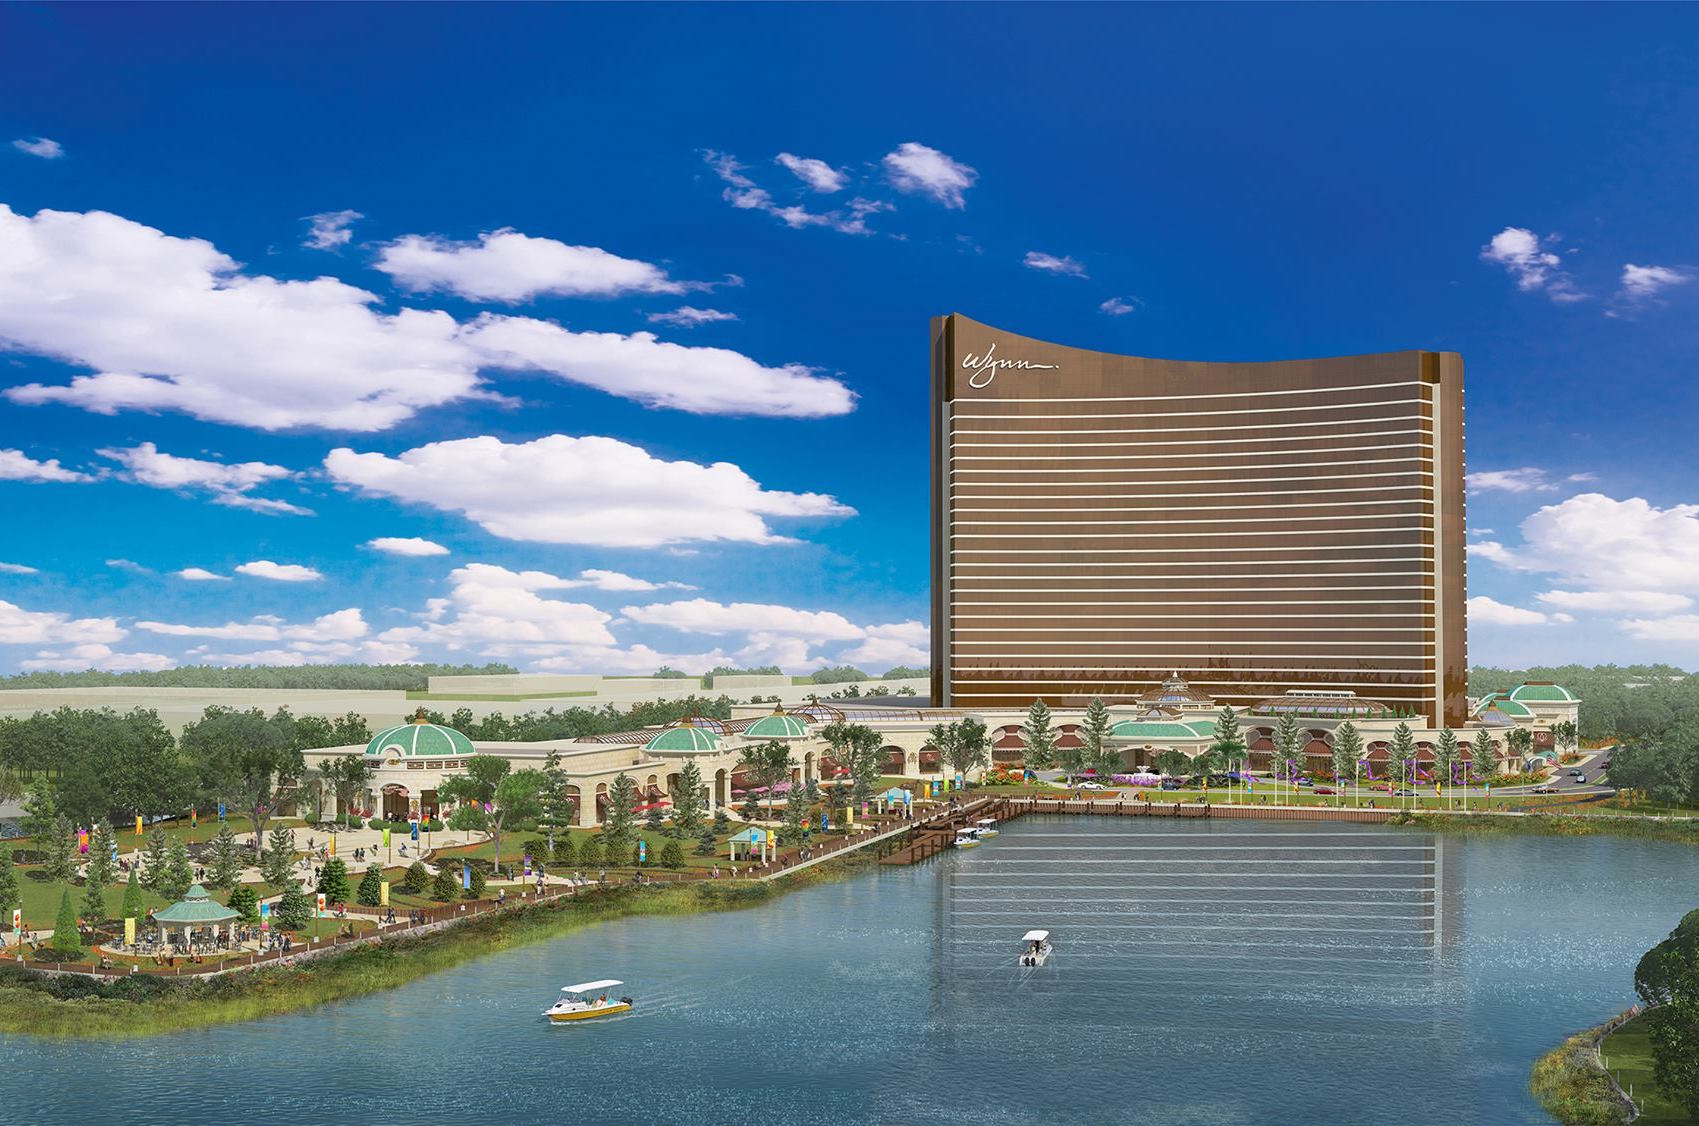 Non-Indian firm that beat out Mohegan Tribe puts casino on hold